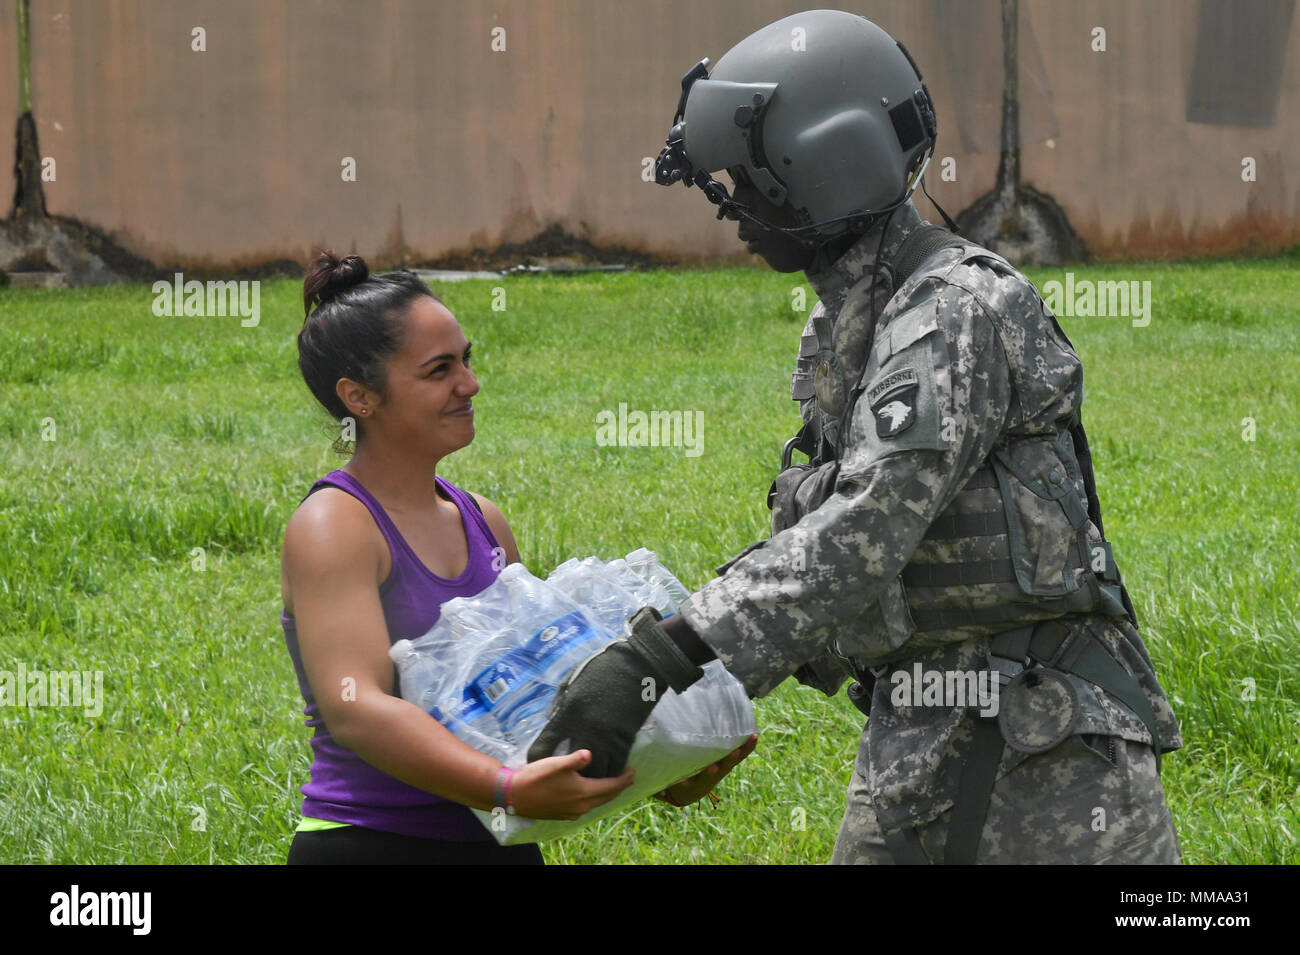 Soldiers with 6th Battalion, 101st General Support Battalion, 101st Combat Aviation Brigade, 101st Airborne Division (Air Assault) deliver food and water October 3, 2016 to Orocovis, Puerto RIco. The Soldiers are supporting the relief efforts in Puerto Rico after the devastating effects of Hurricane Maria. (U.S. Army Photo by Sgt. Marcus Floyd, 101st Combat Aviation Brigade) - Stock Image